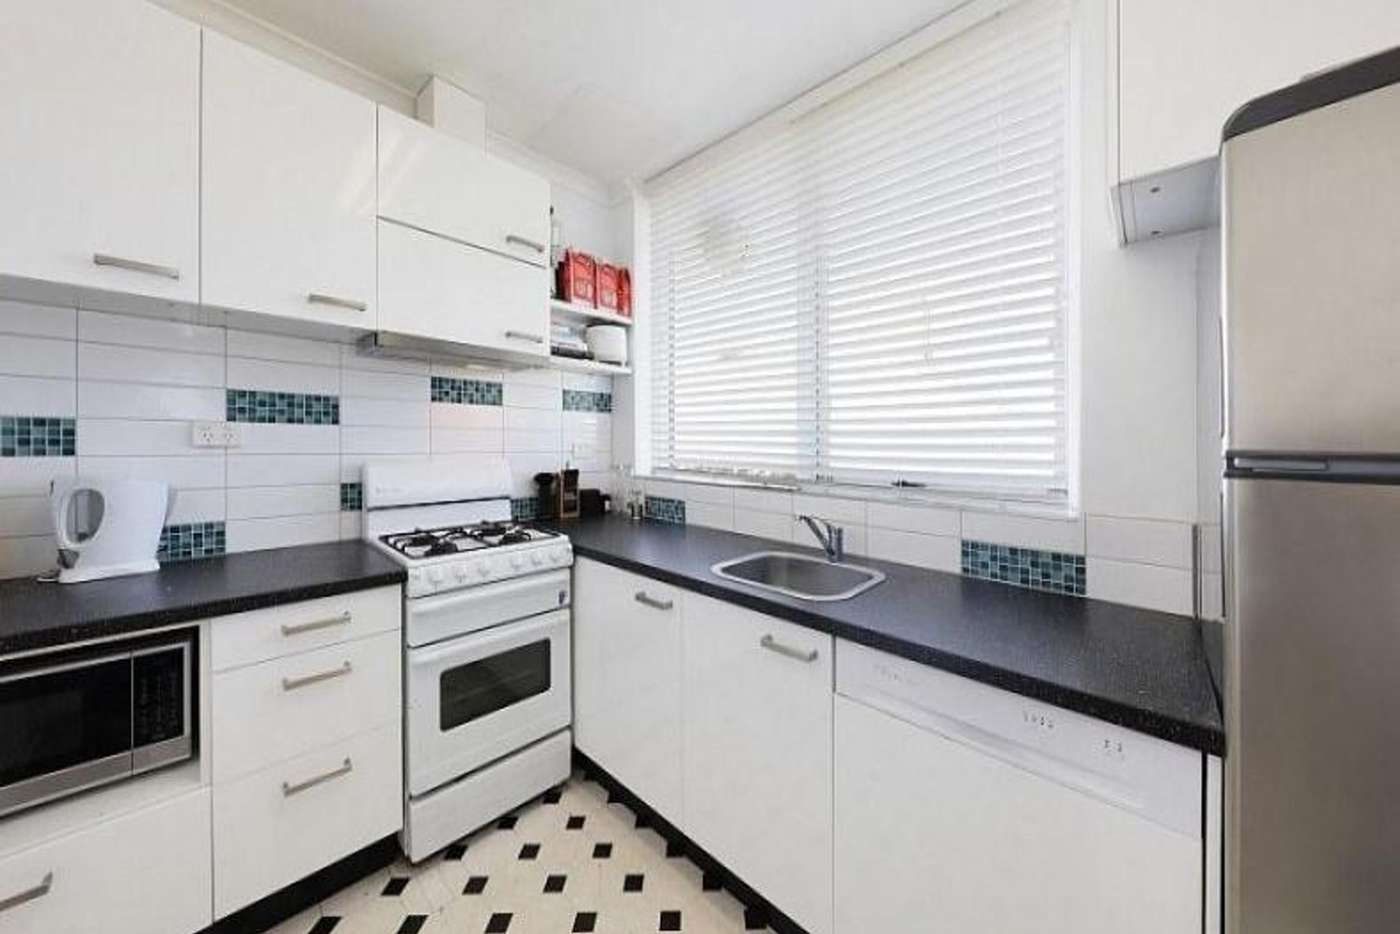 Main view of Homely apartment listing, 12/10 Denbigh Road, Armadale VIC 3143